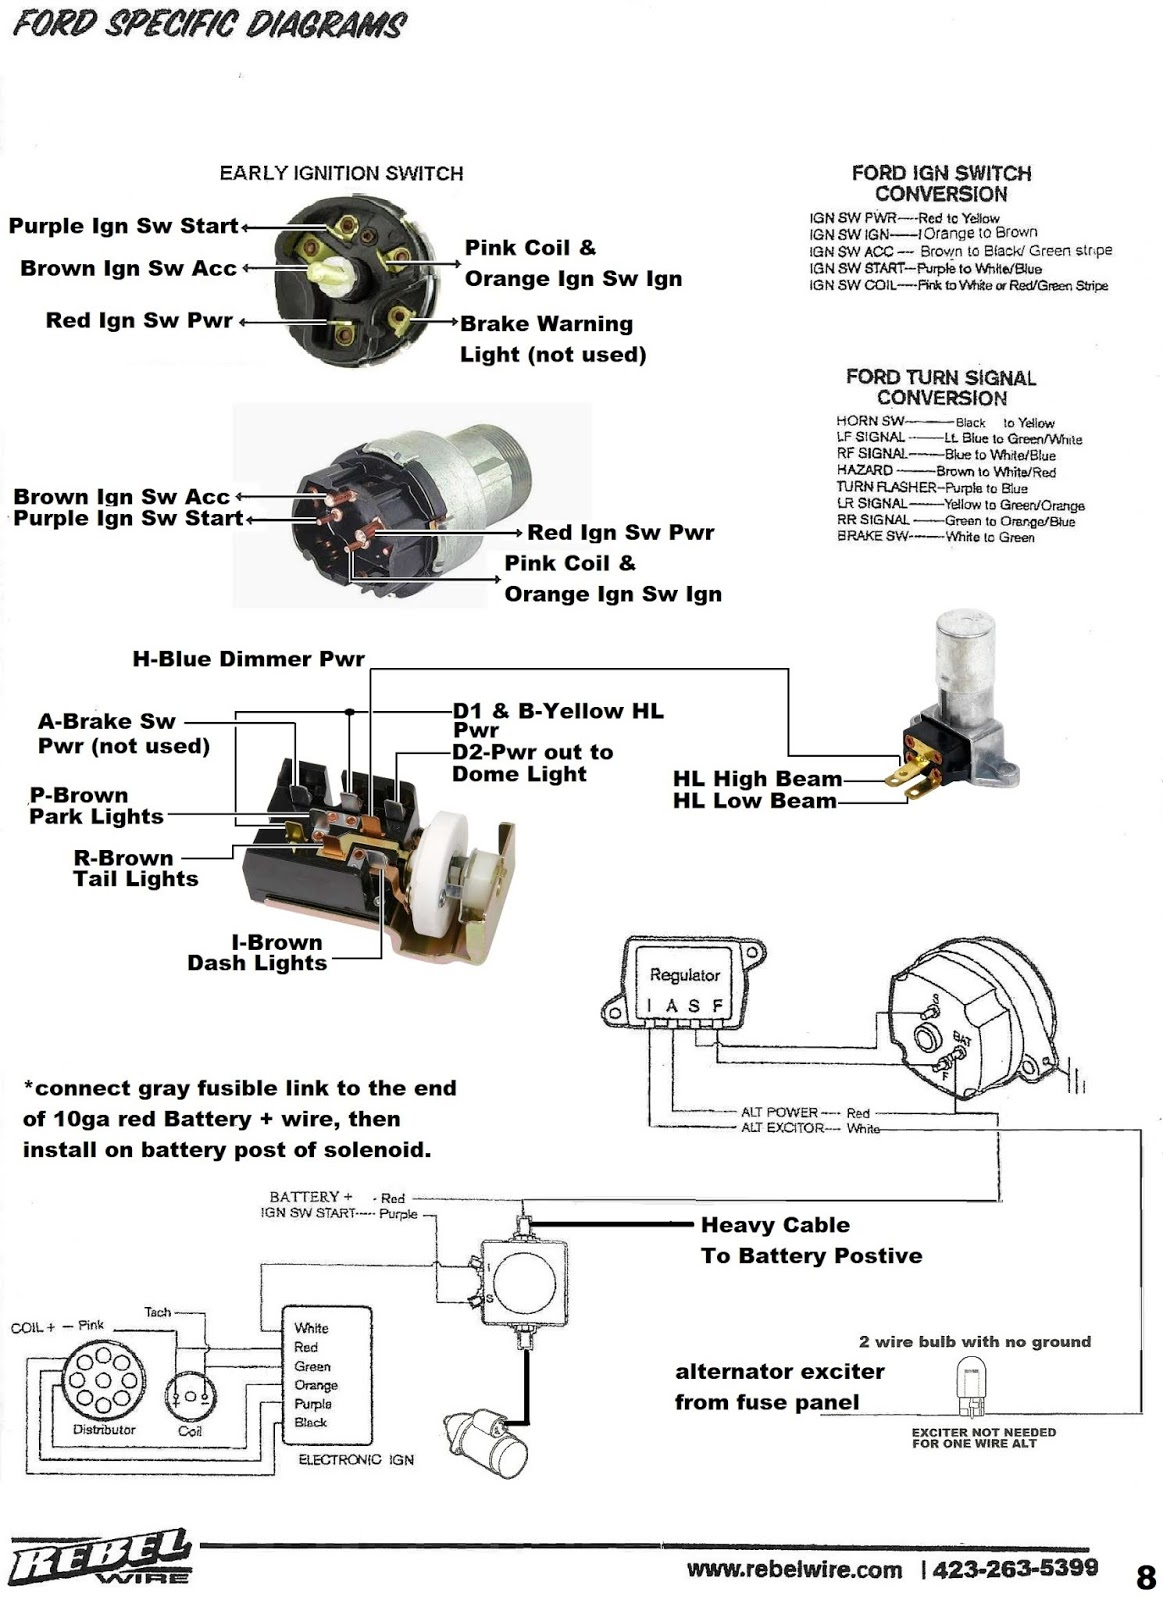 1969 Gm Ignition Switch Wiring Diagram Dual 4 Ohm Svc Wiring Diagram Crutchfield For Wiring Diagram Schematics